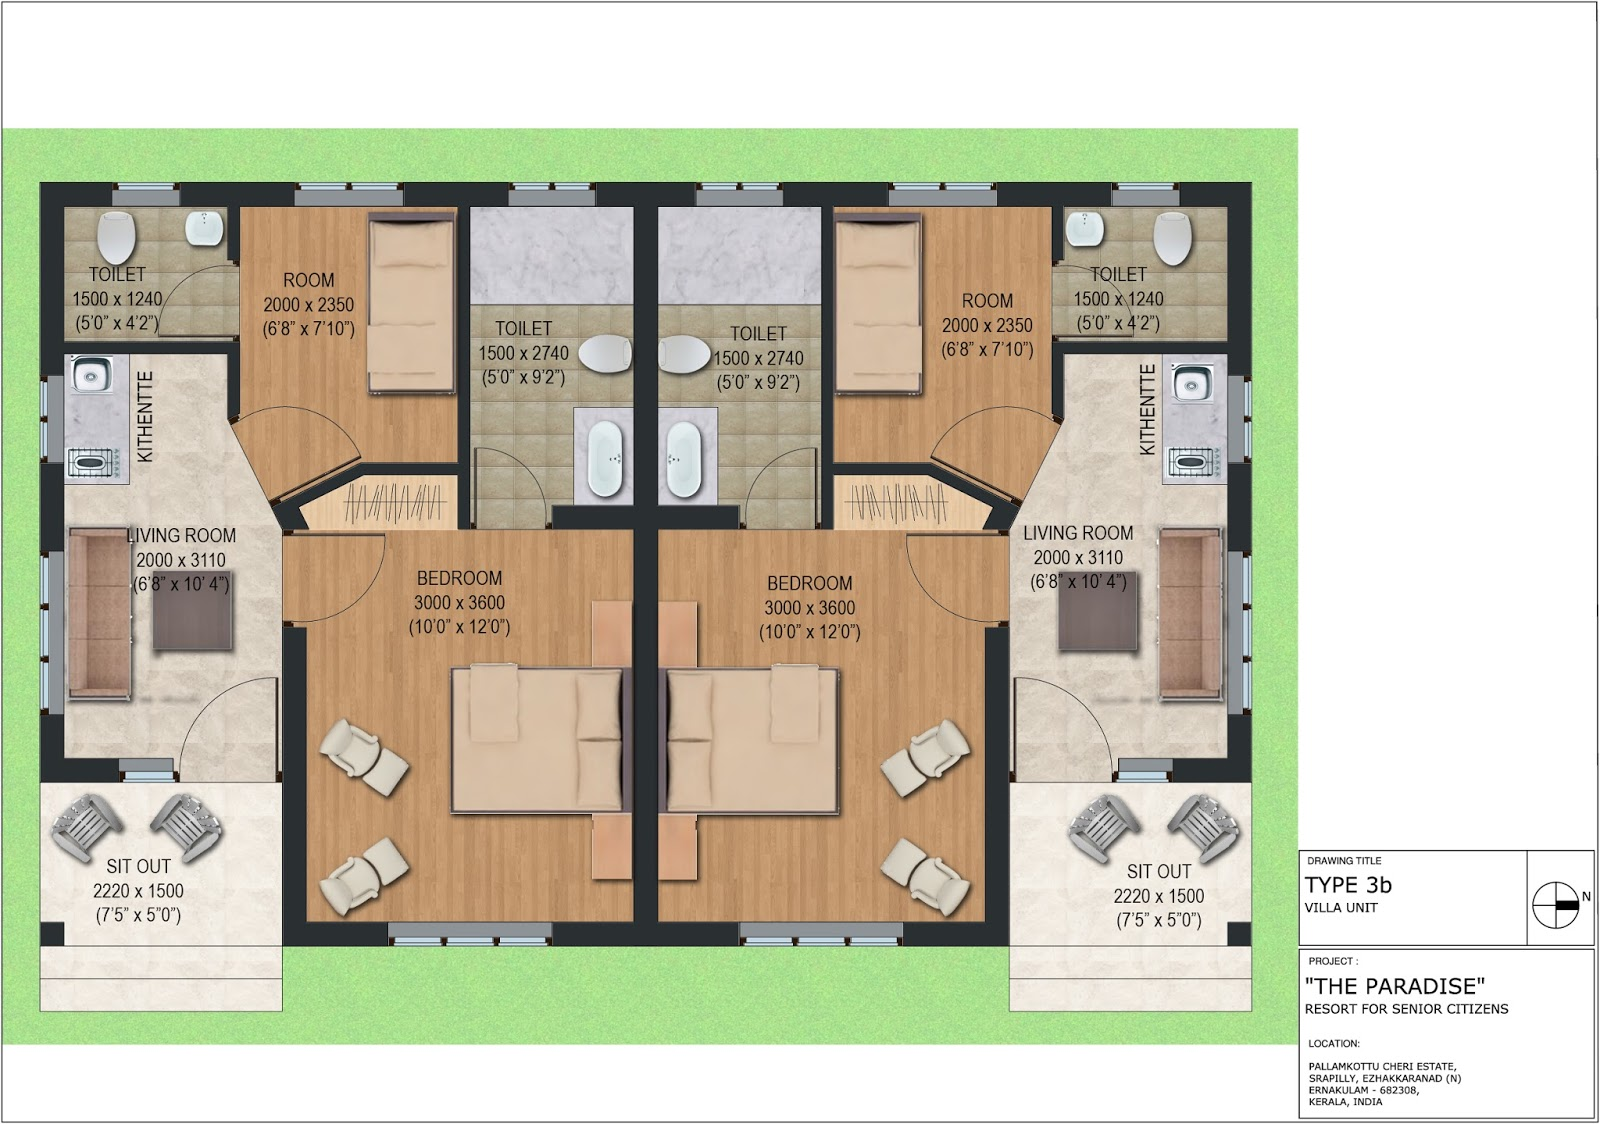 Luxury resort for senior citizens the paradise for Duplex layout plan